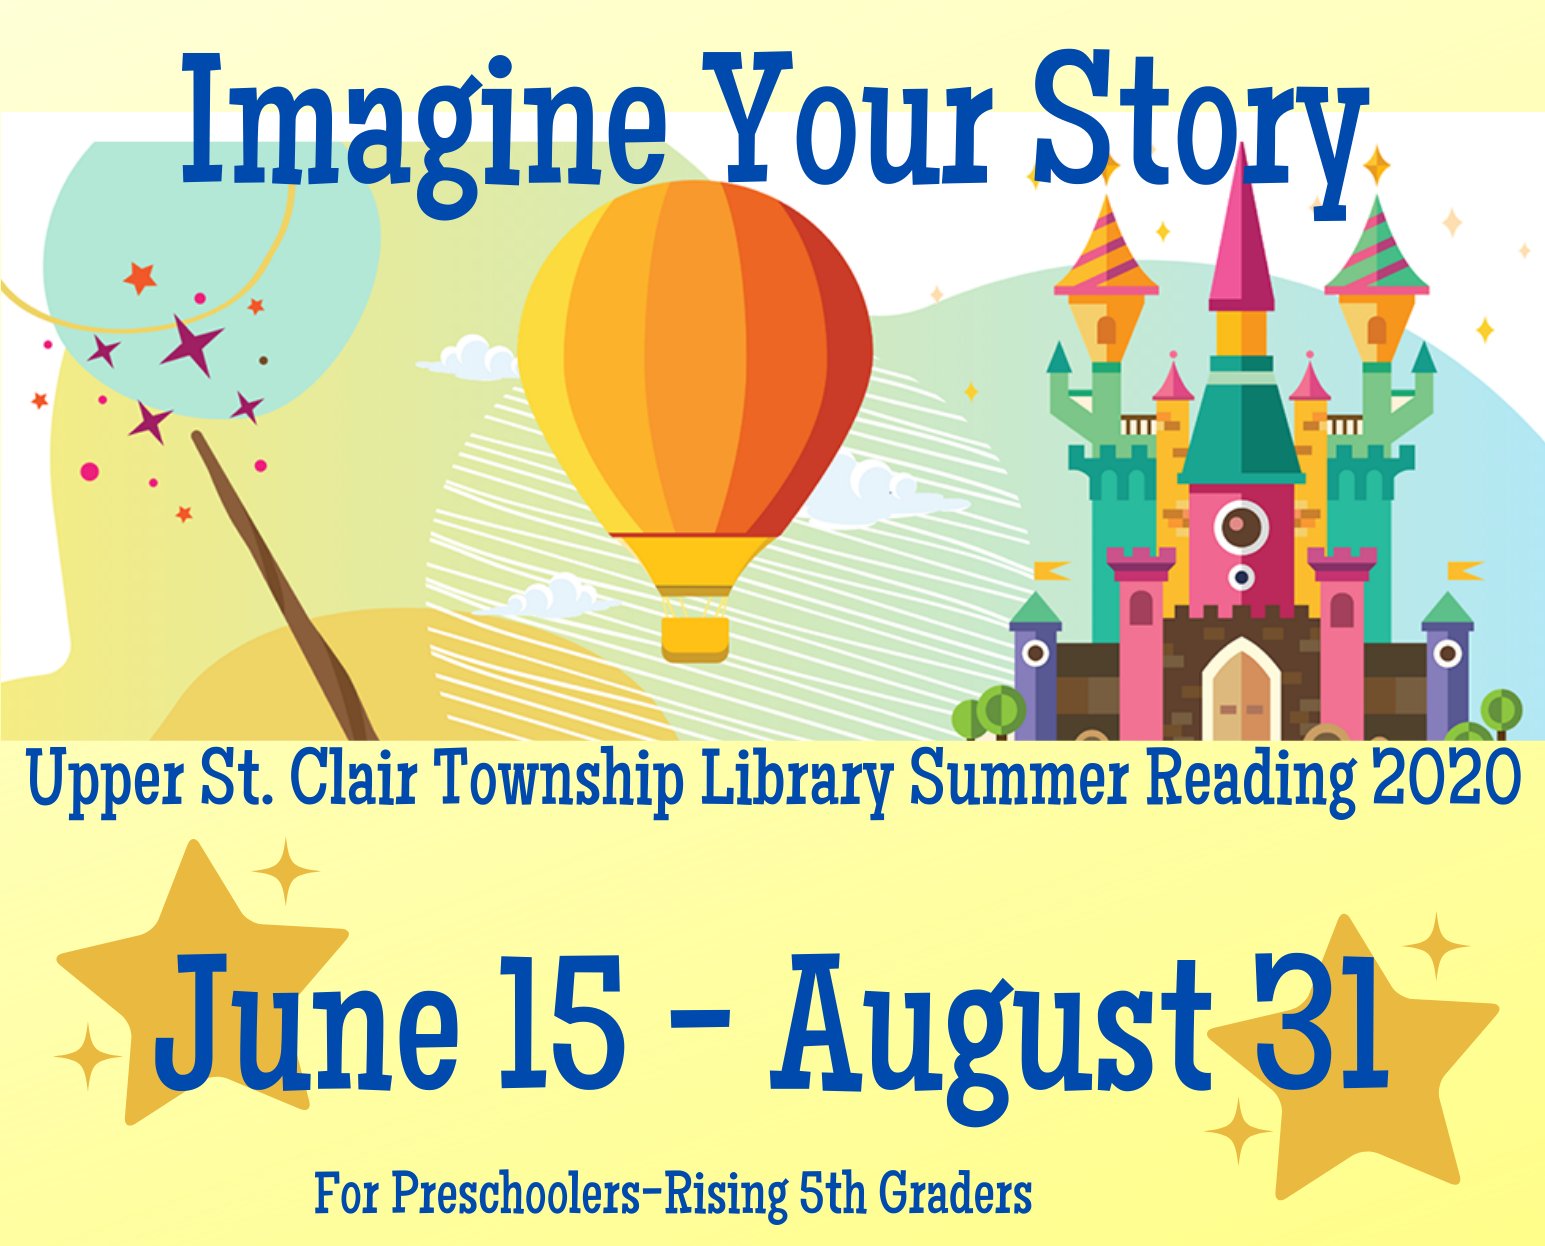 Imagine Your Story: Online Summer Reading for Kids